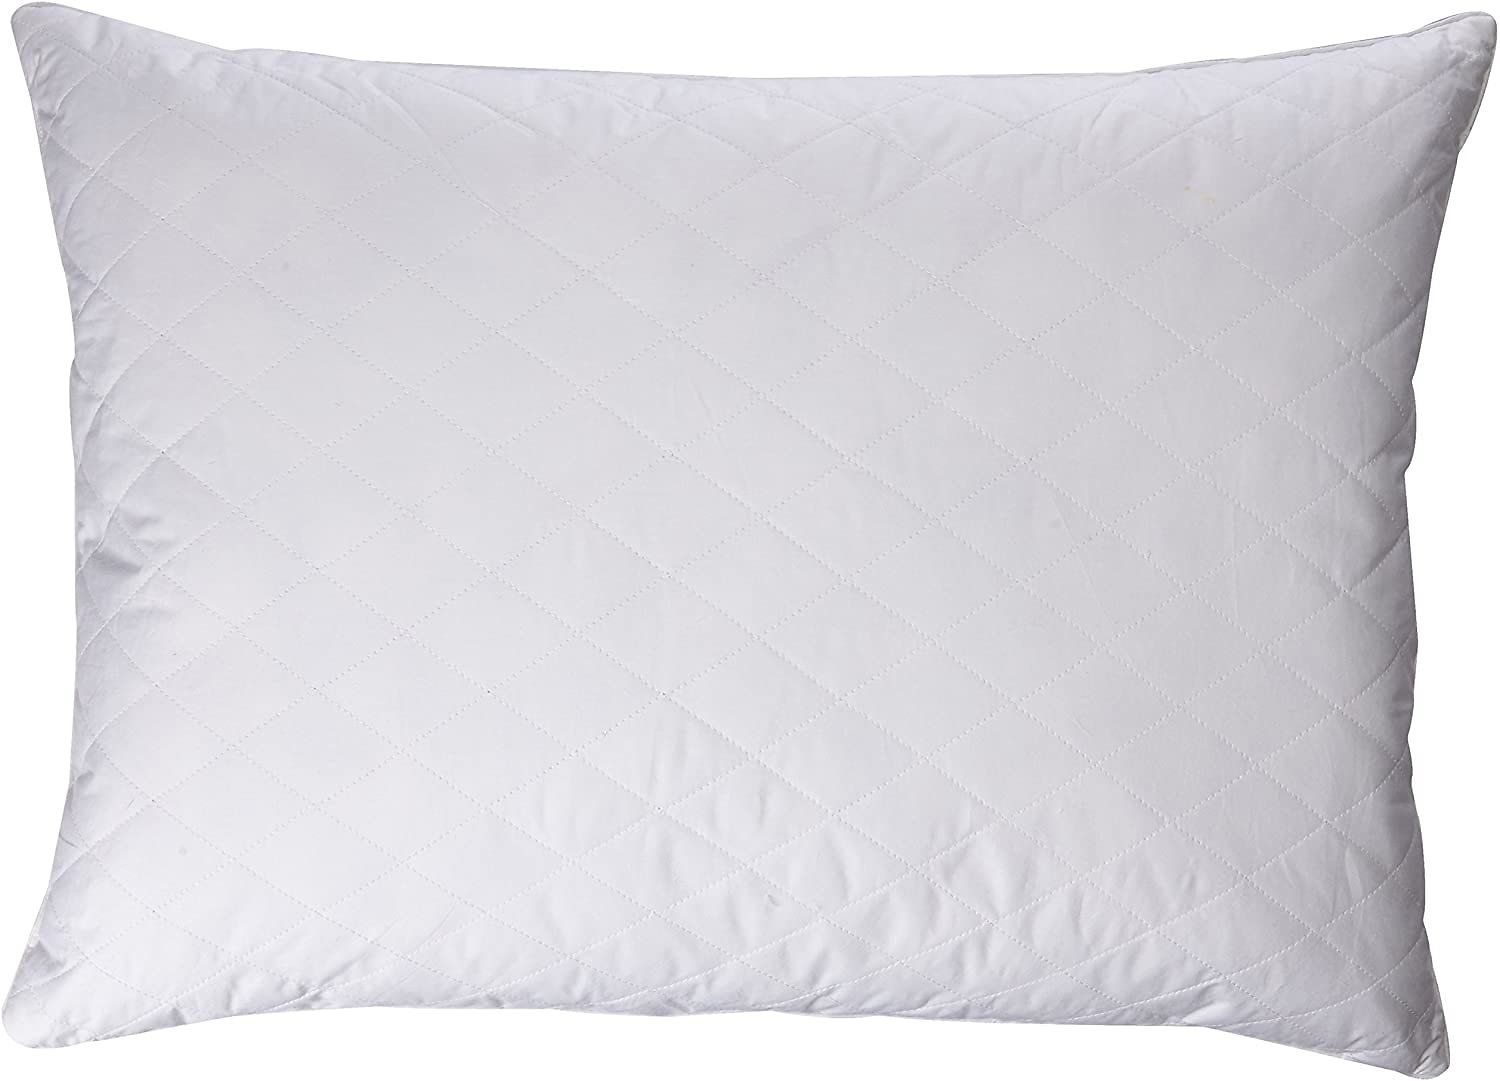 Blue Ridge White Goose Feather and Down Jumbo Gusset Pillow 2-Pack